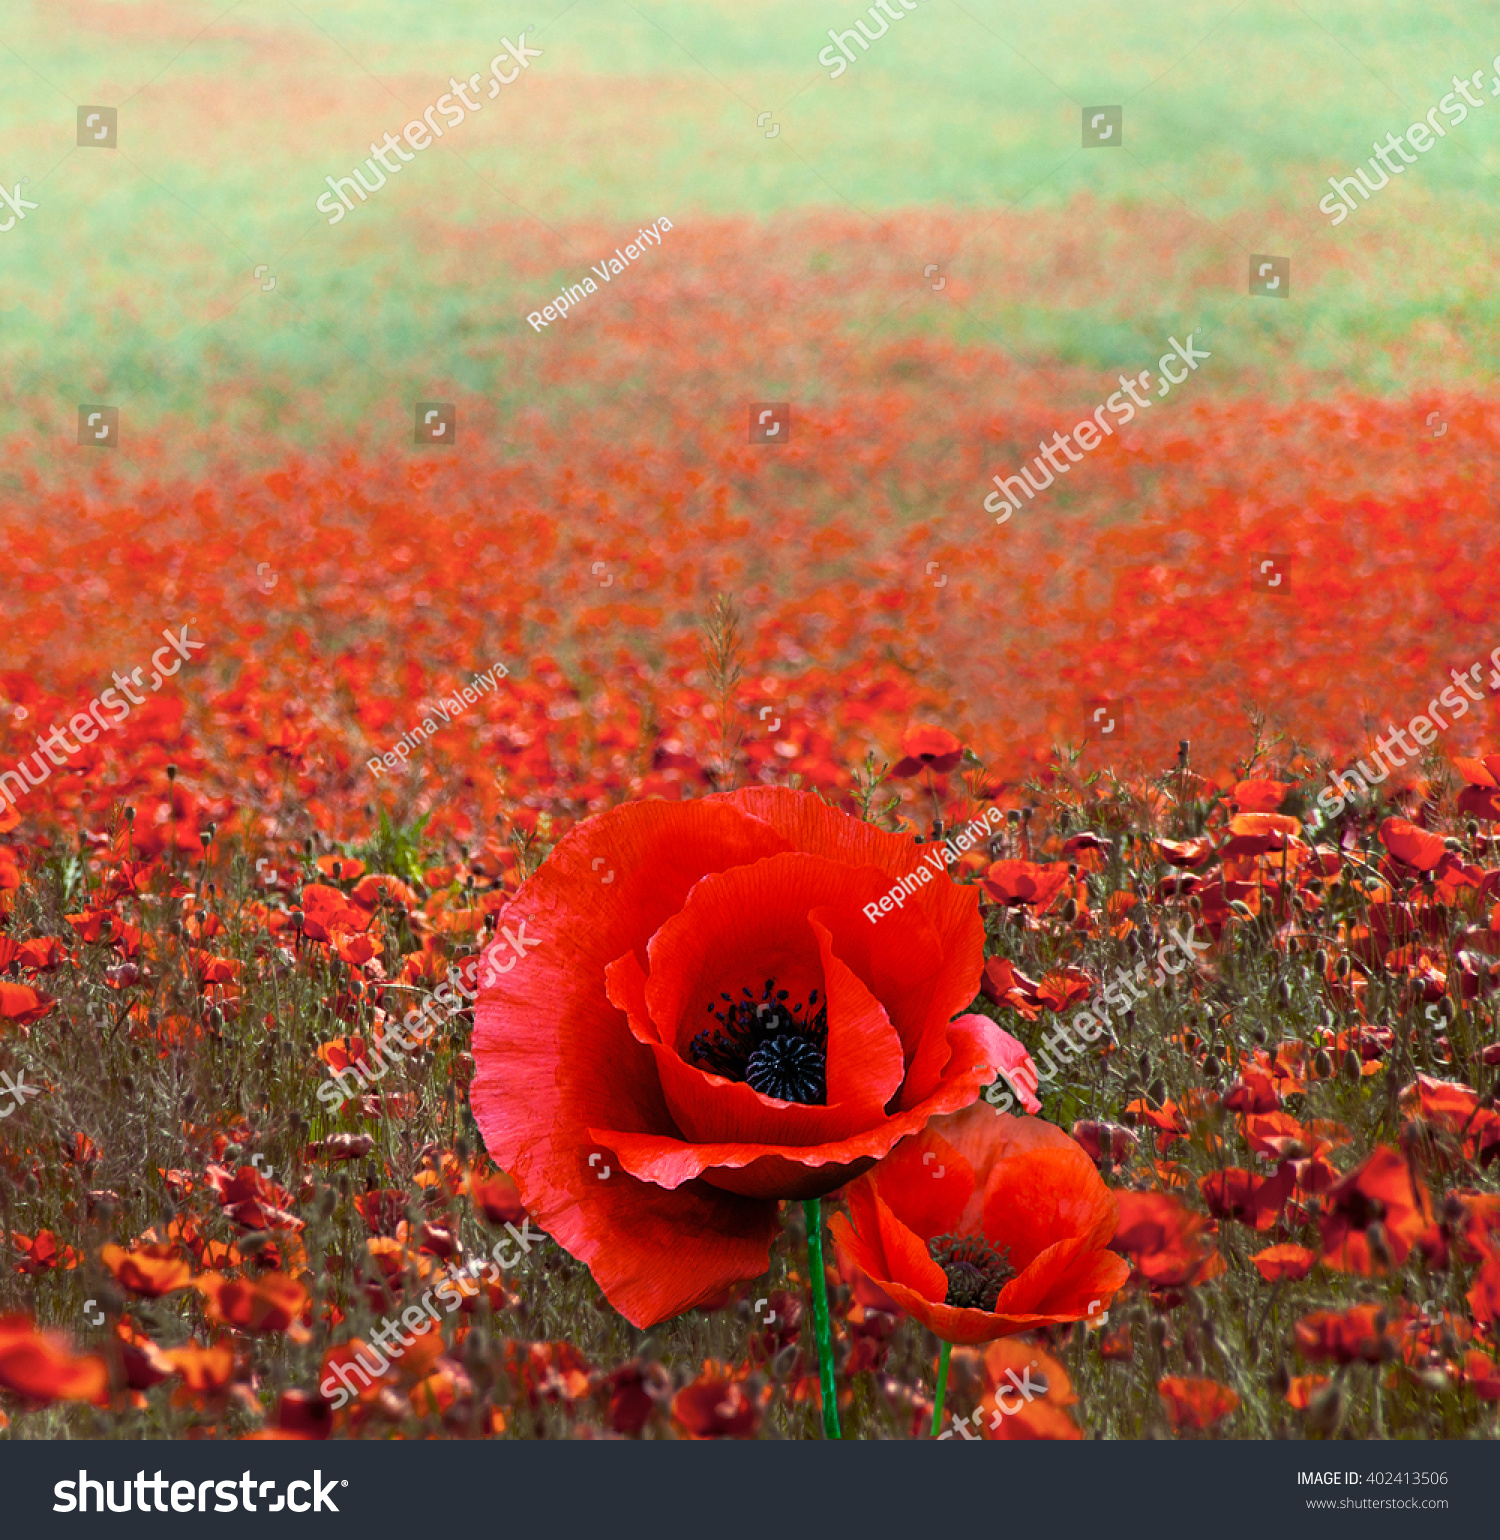 Red poppy flowers on field symbol stock photo 402413506 shutterstock red poppy flowers on the field as symbol for remembrance day red poppy flower with buycottarizona